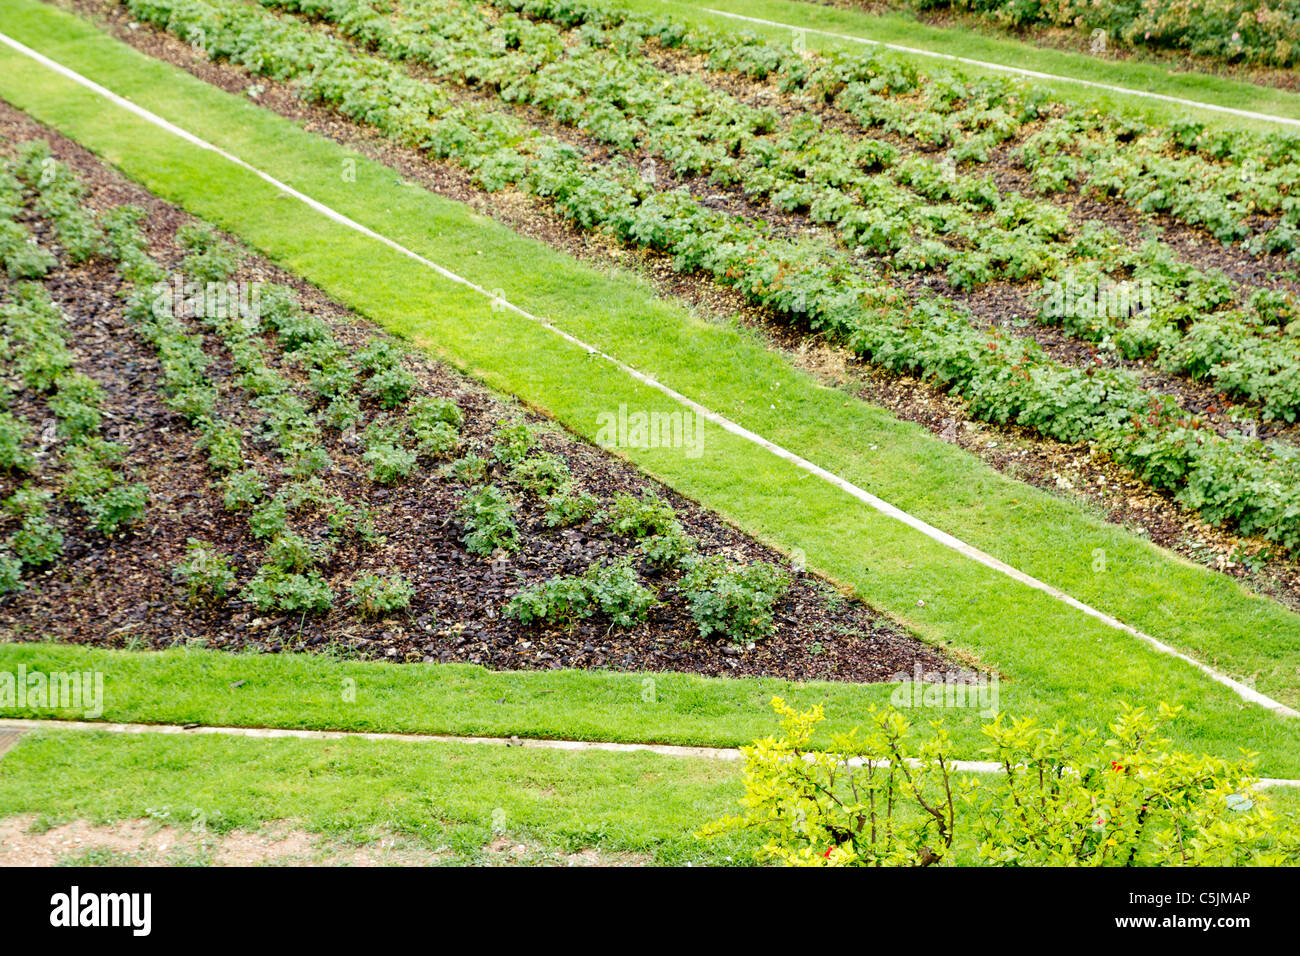 La forme de l'angle moyen d'herbe dans le jardin vert de elevated view Photo Stock